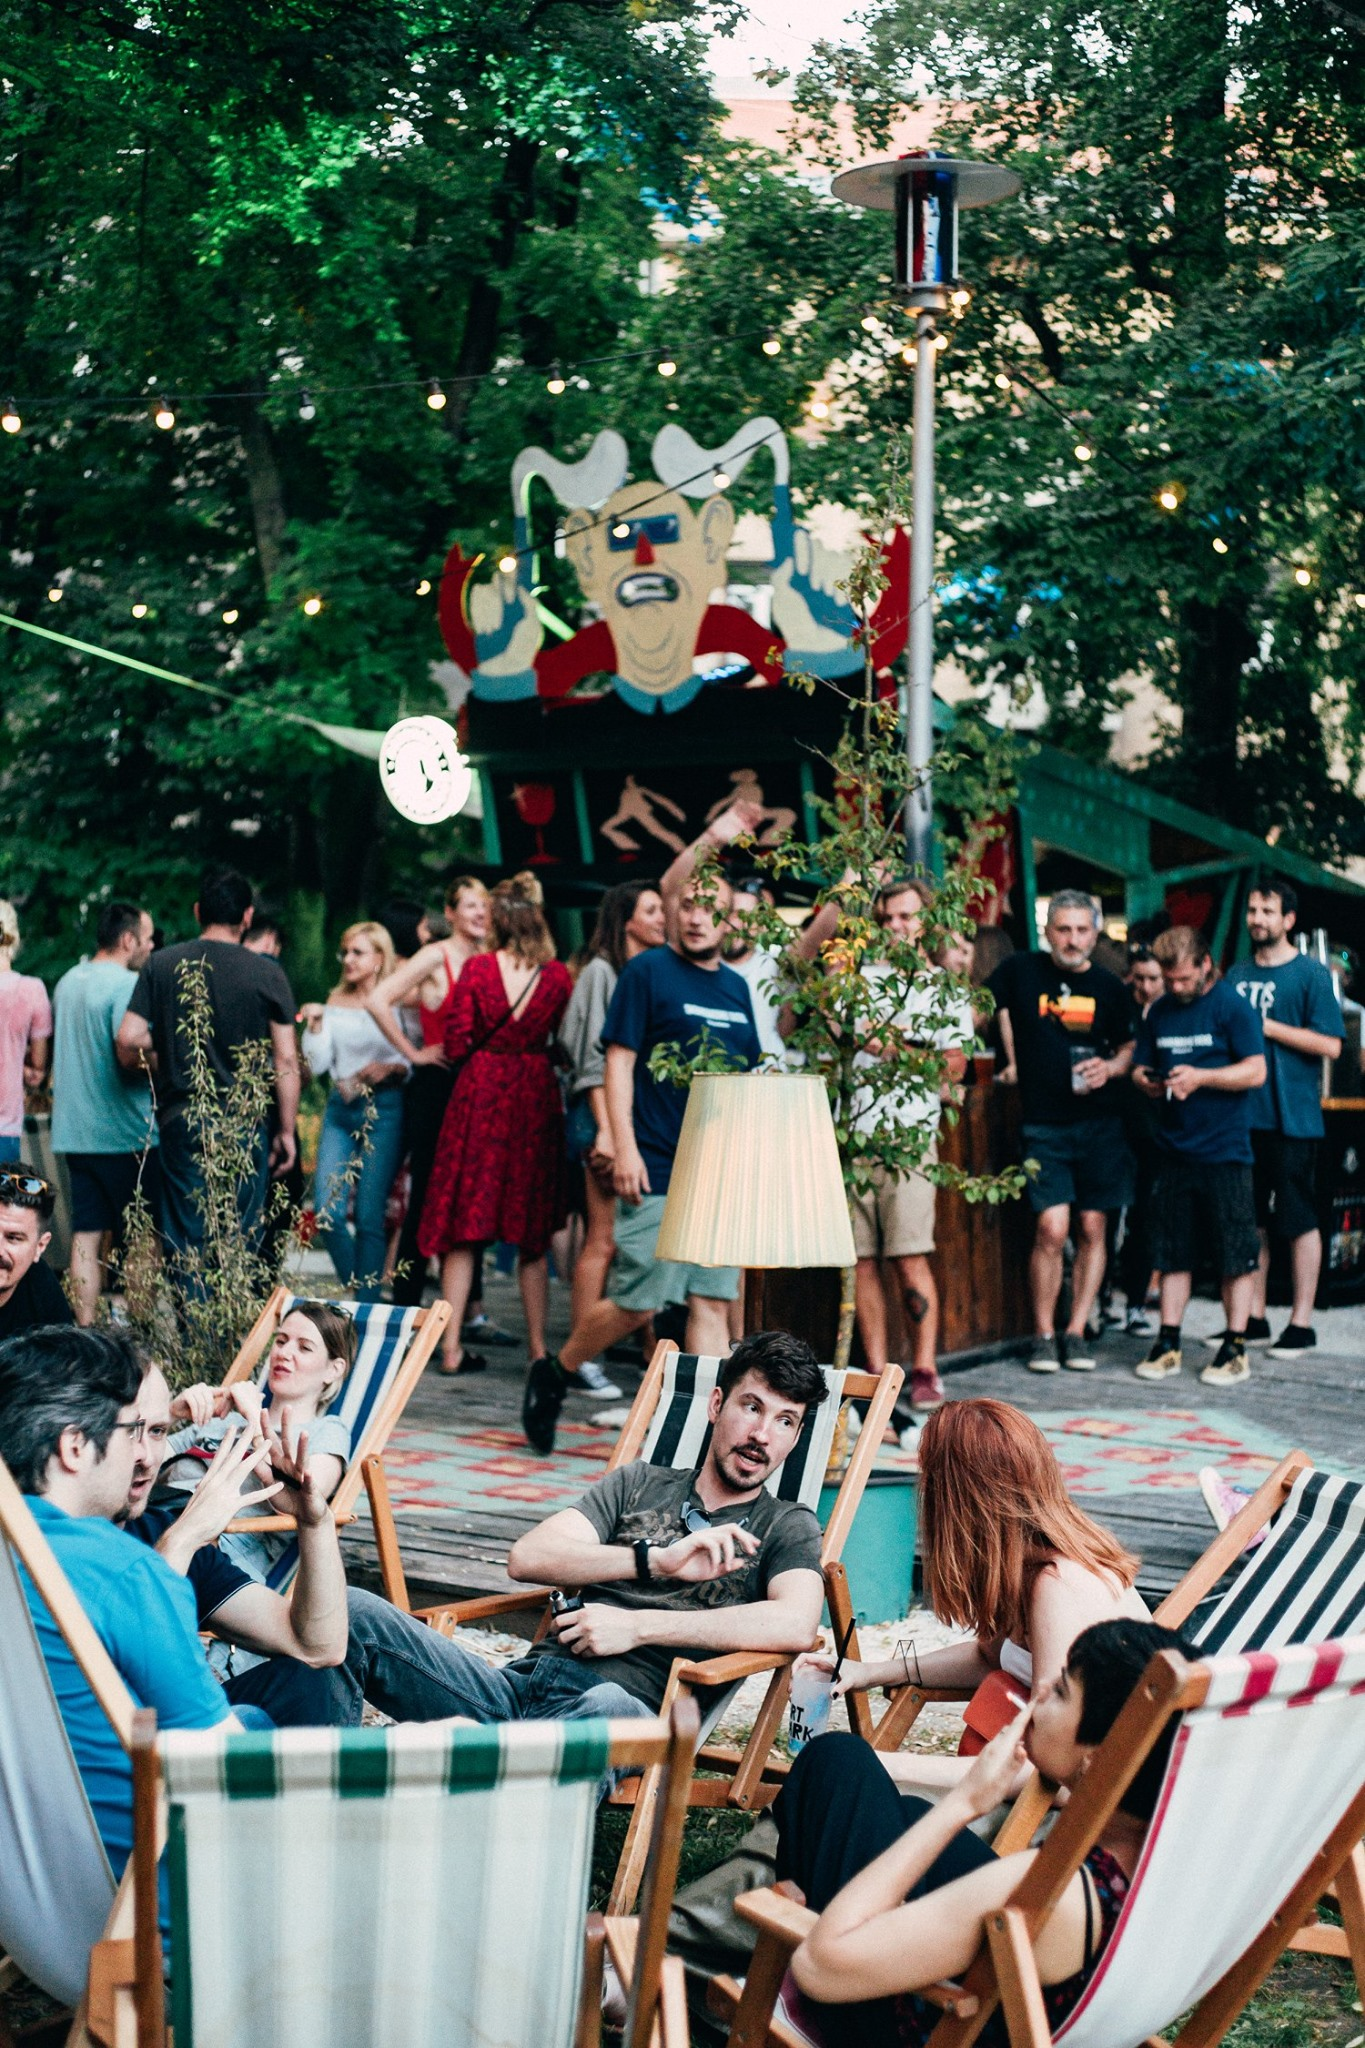 Happenings in Zagreb: Art park opens at Ribnjak